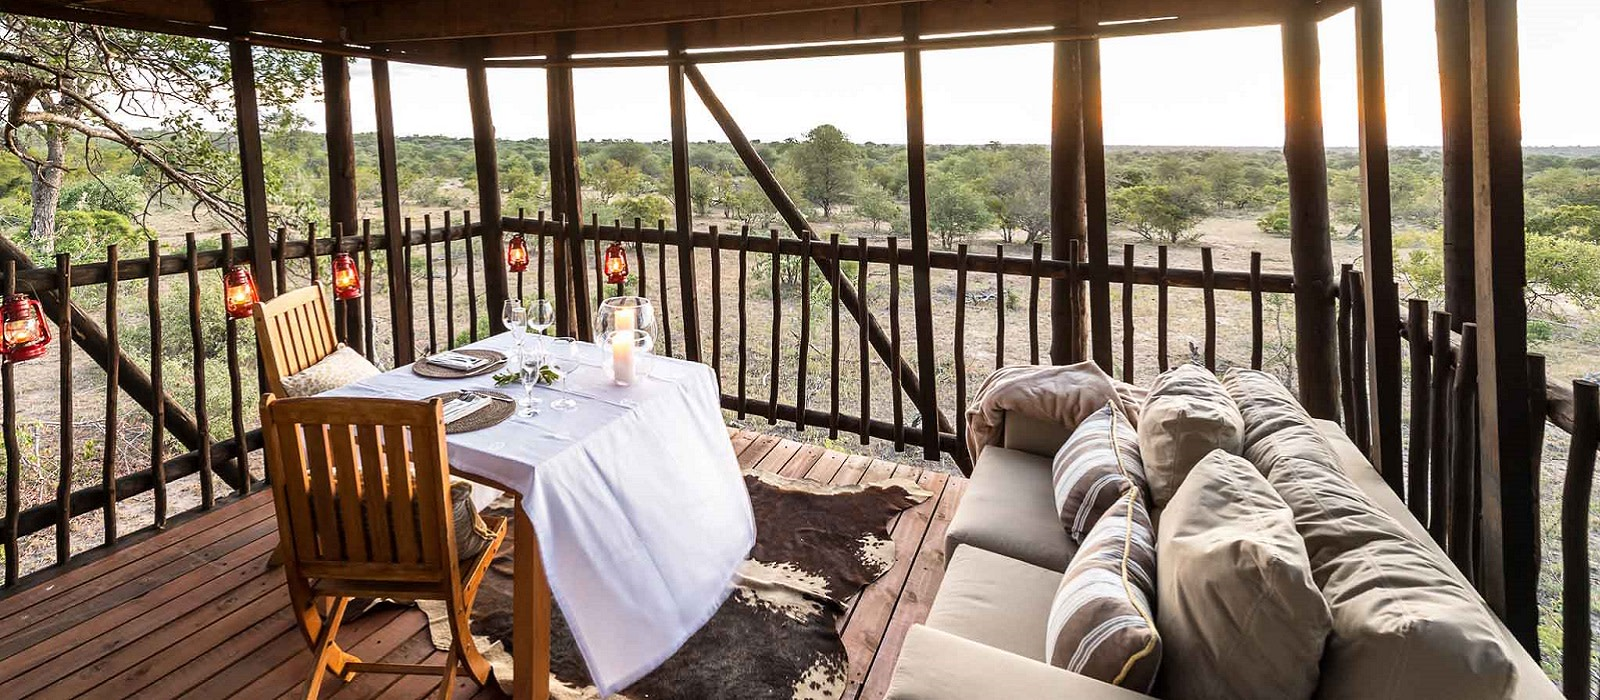 Hotel Africa on Foot South Africa